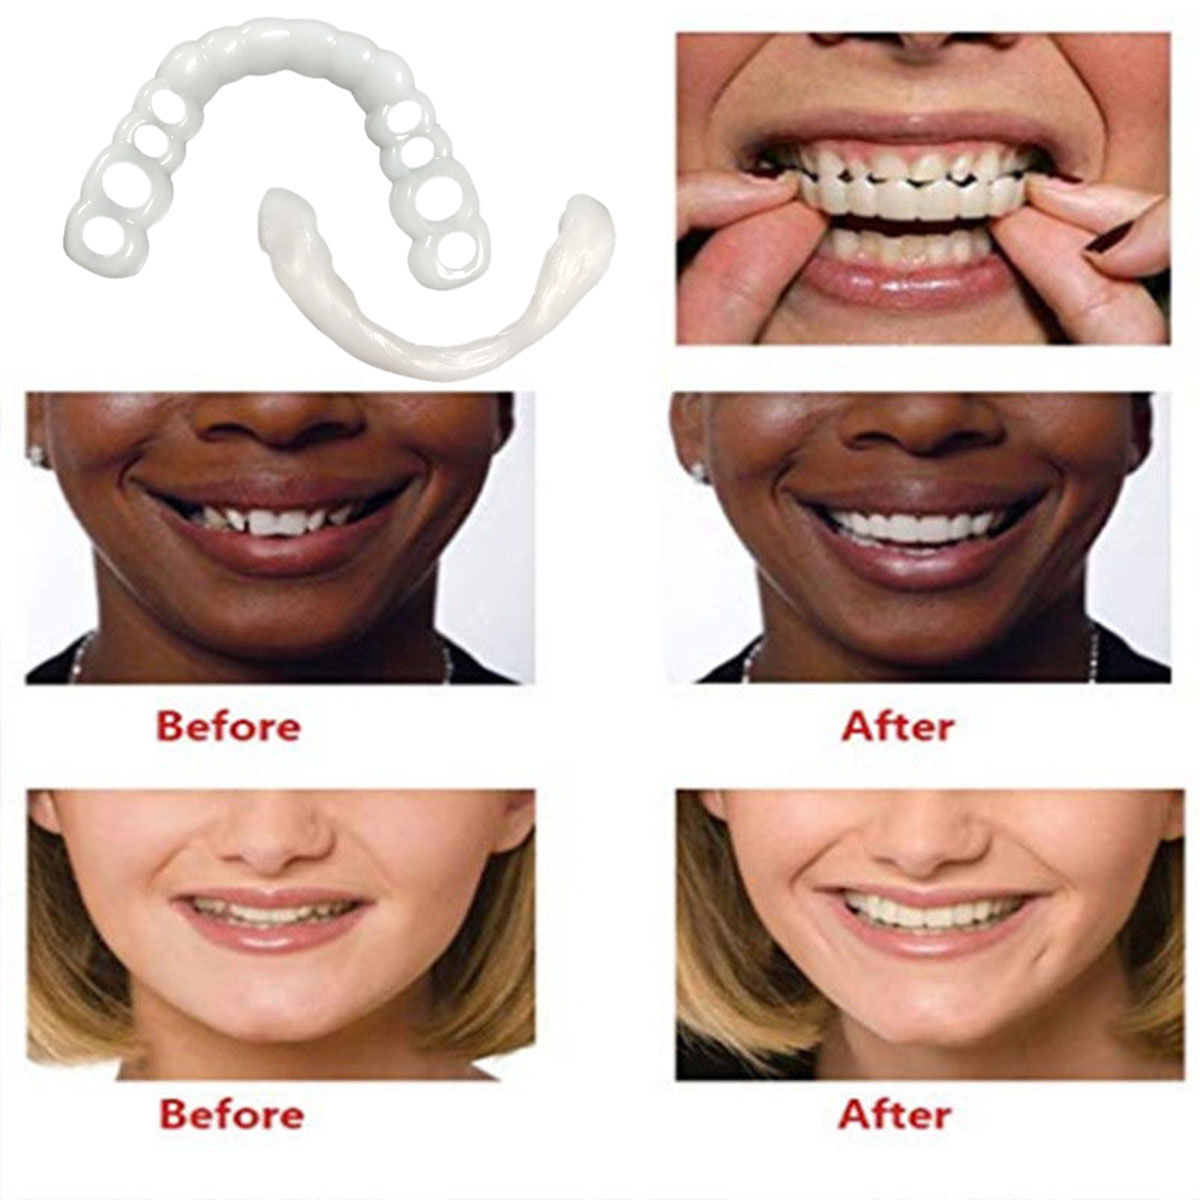 New Denture Care False Dental Tooth For Upper Teeth Whitening Dental Snap On Smile Instant Smile One Size Fits Most Comfortabl